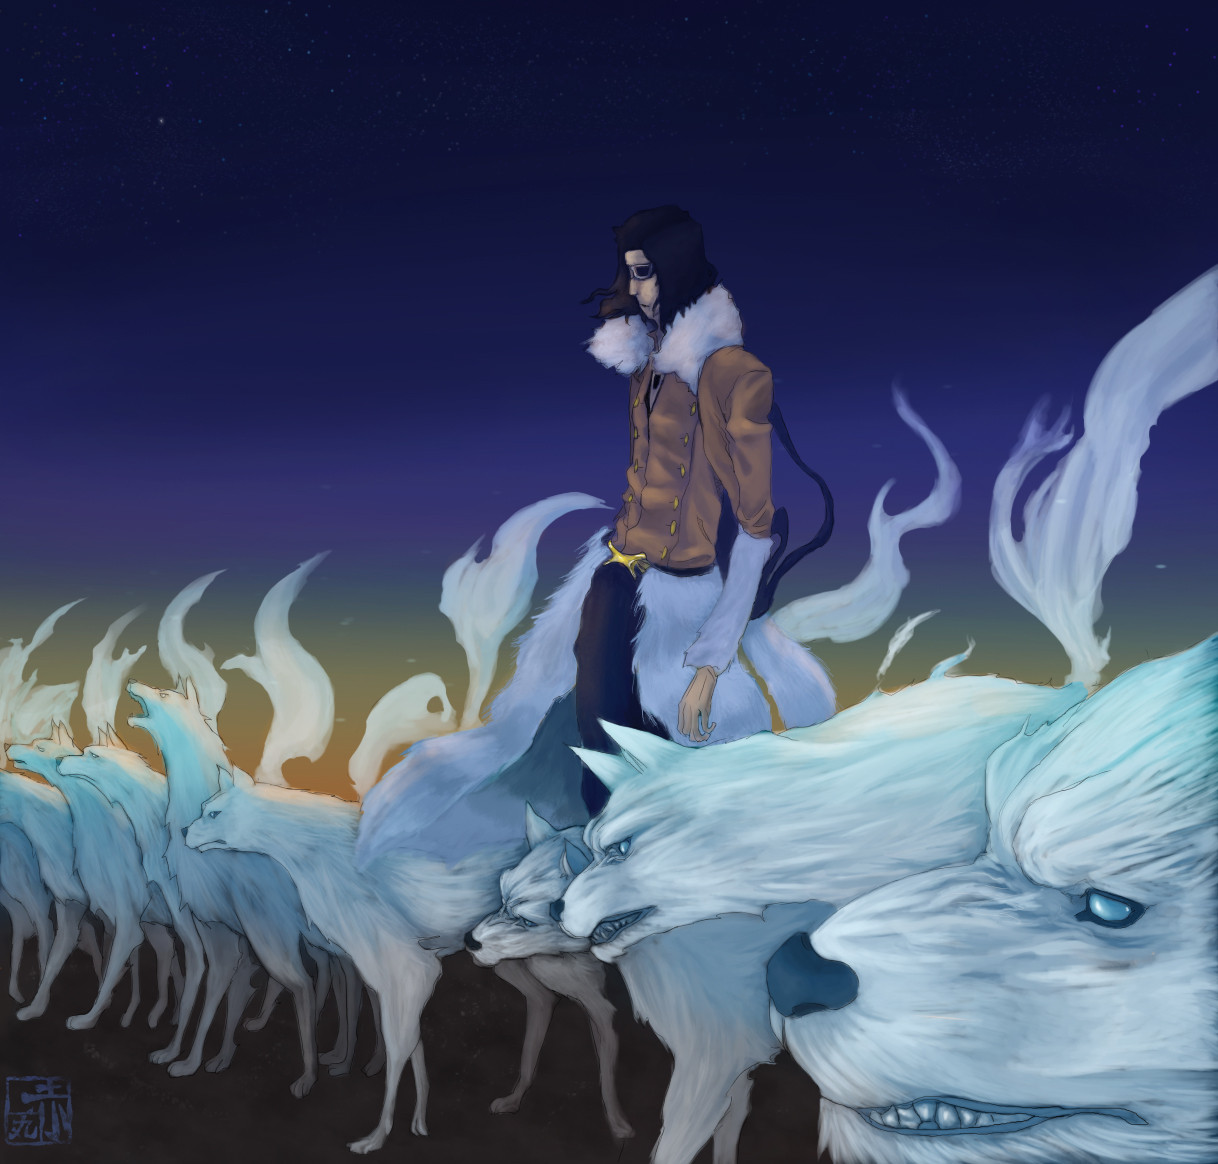 coyote starrk 14 fan arts your daily anime wallpaper and